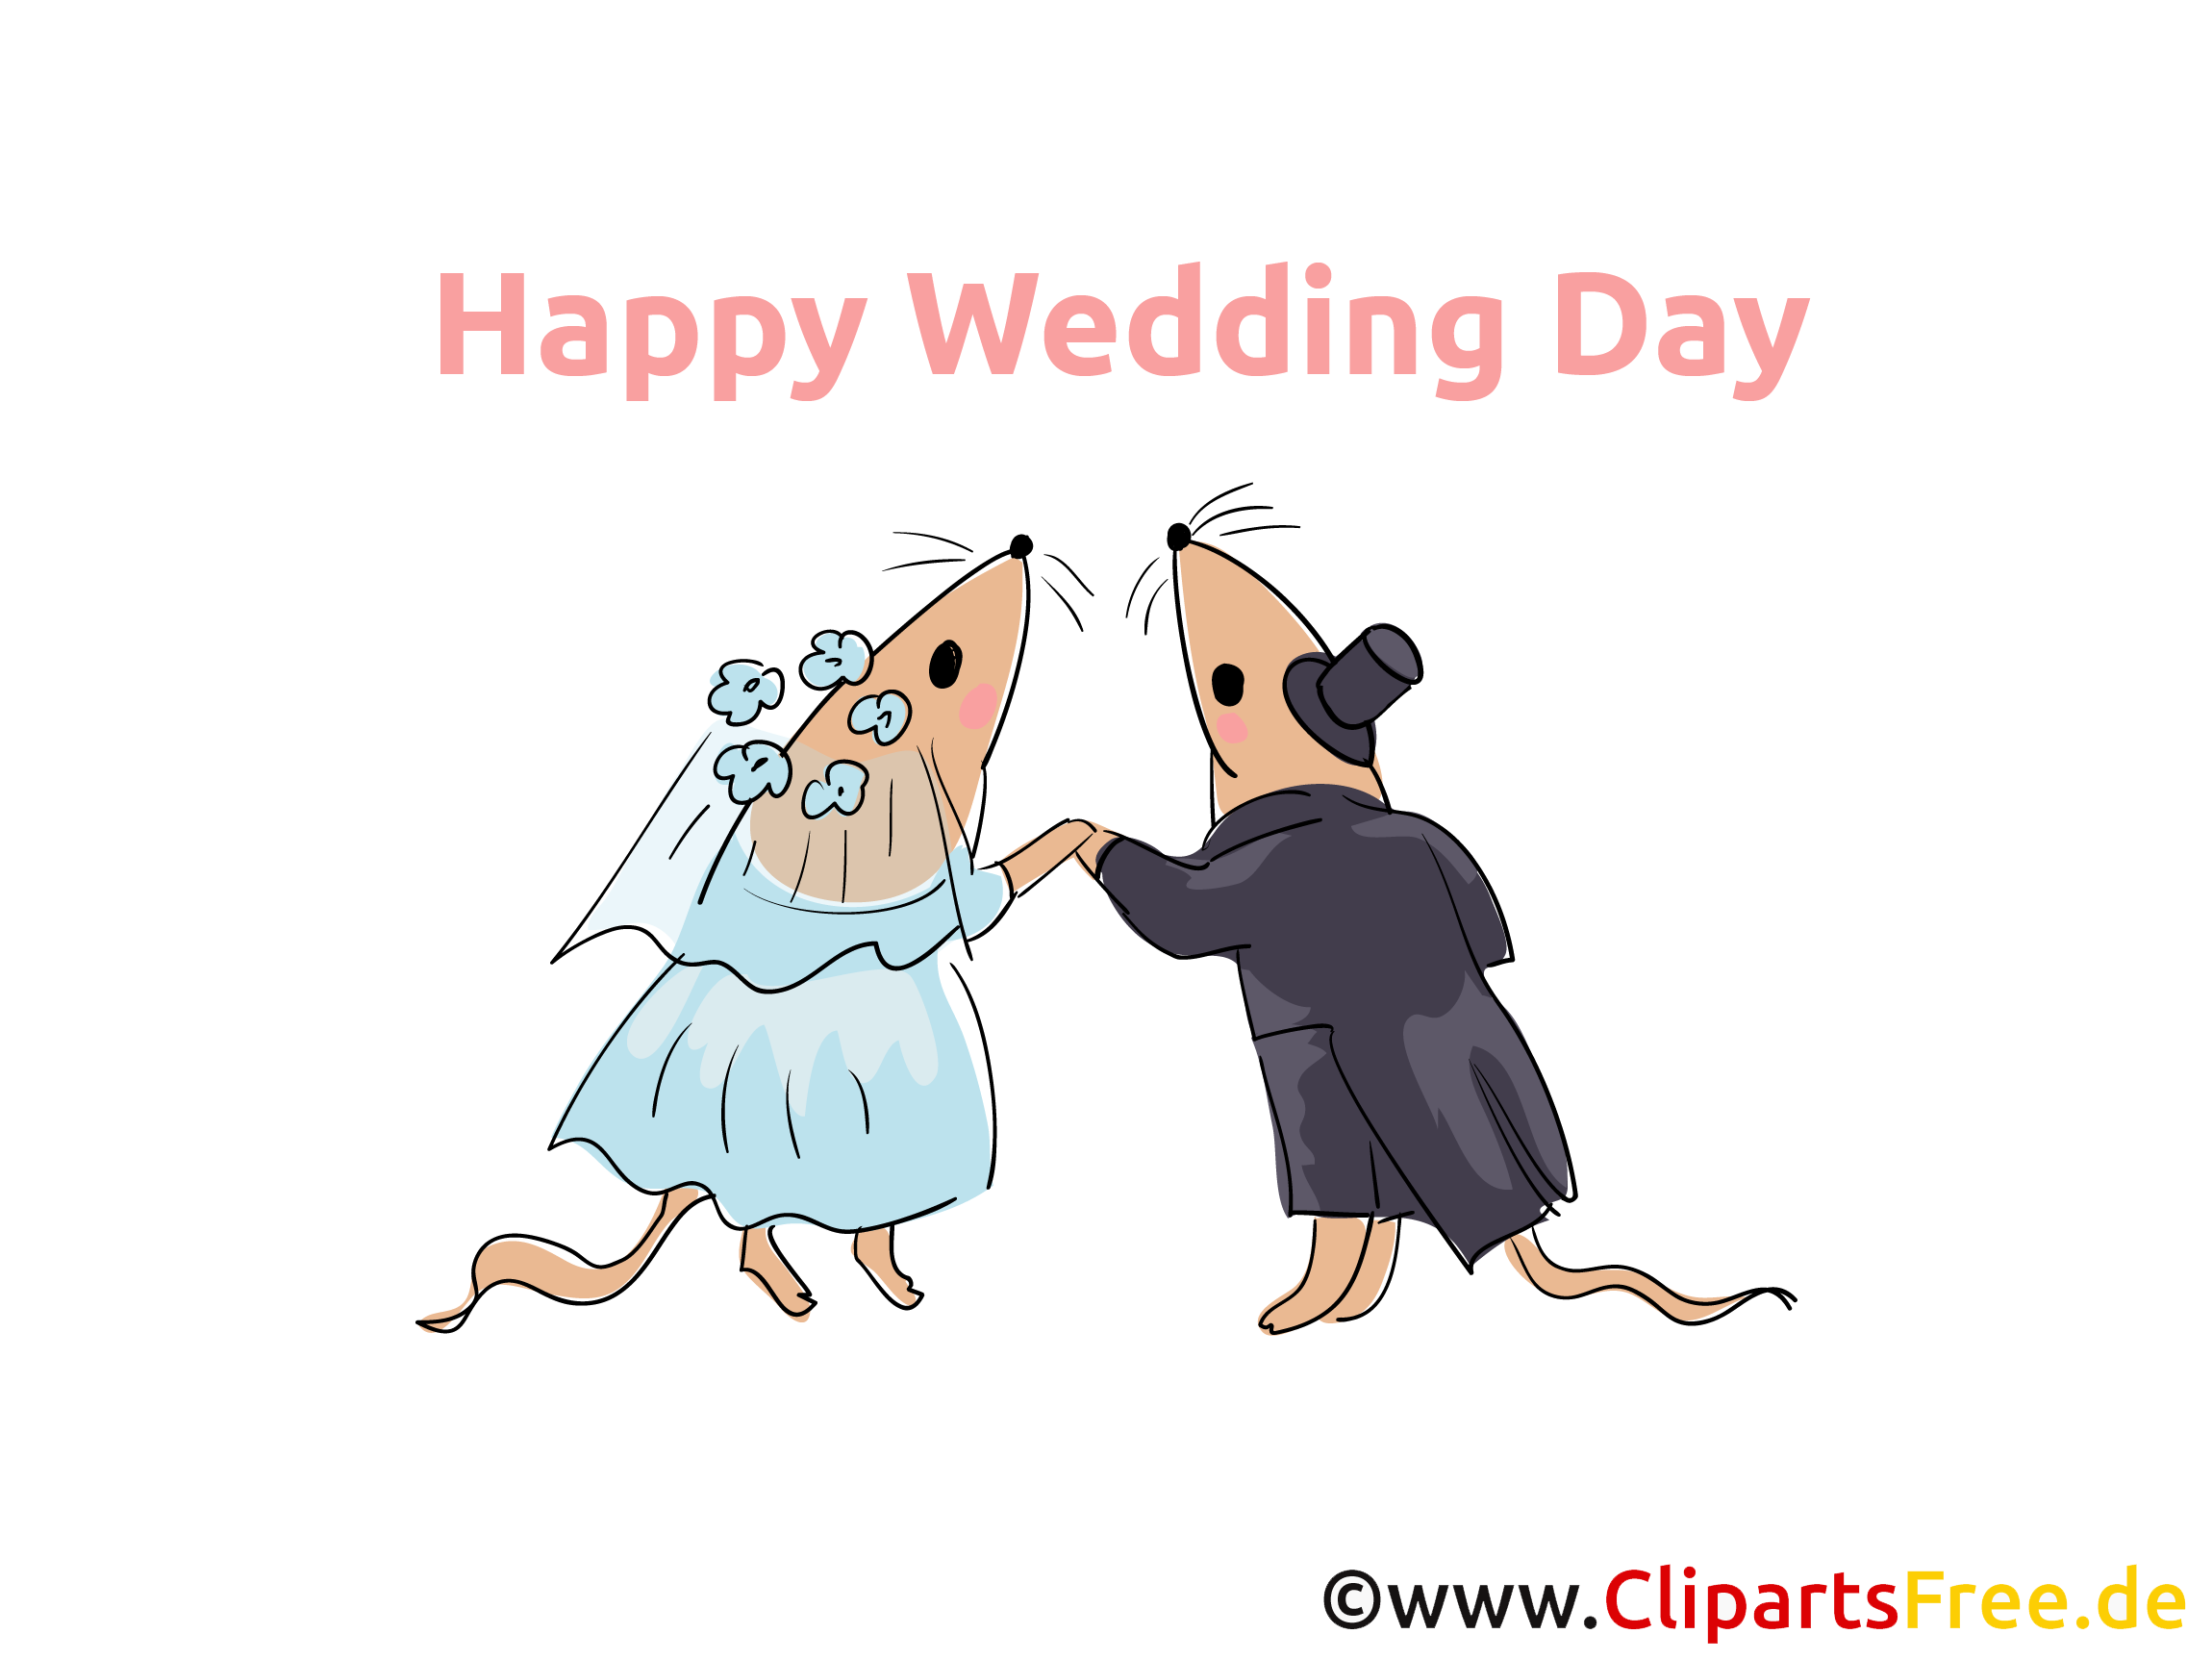 Happy Wedding Clip Art download for free